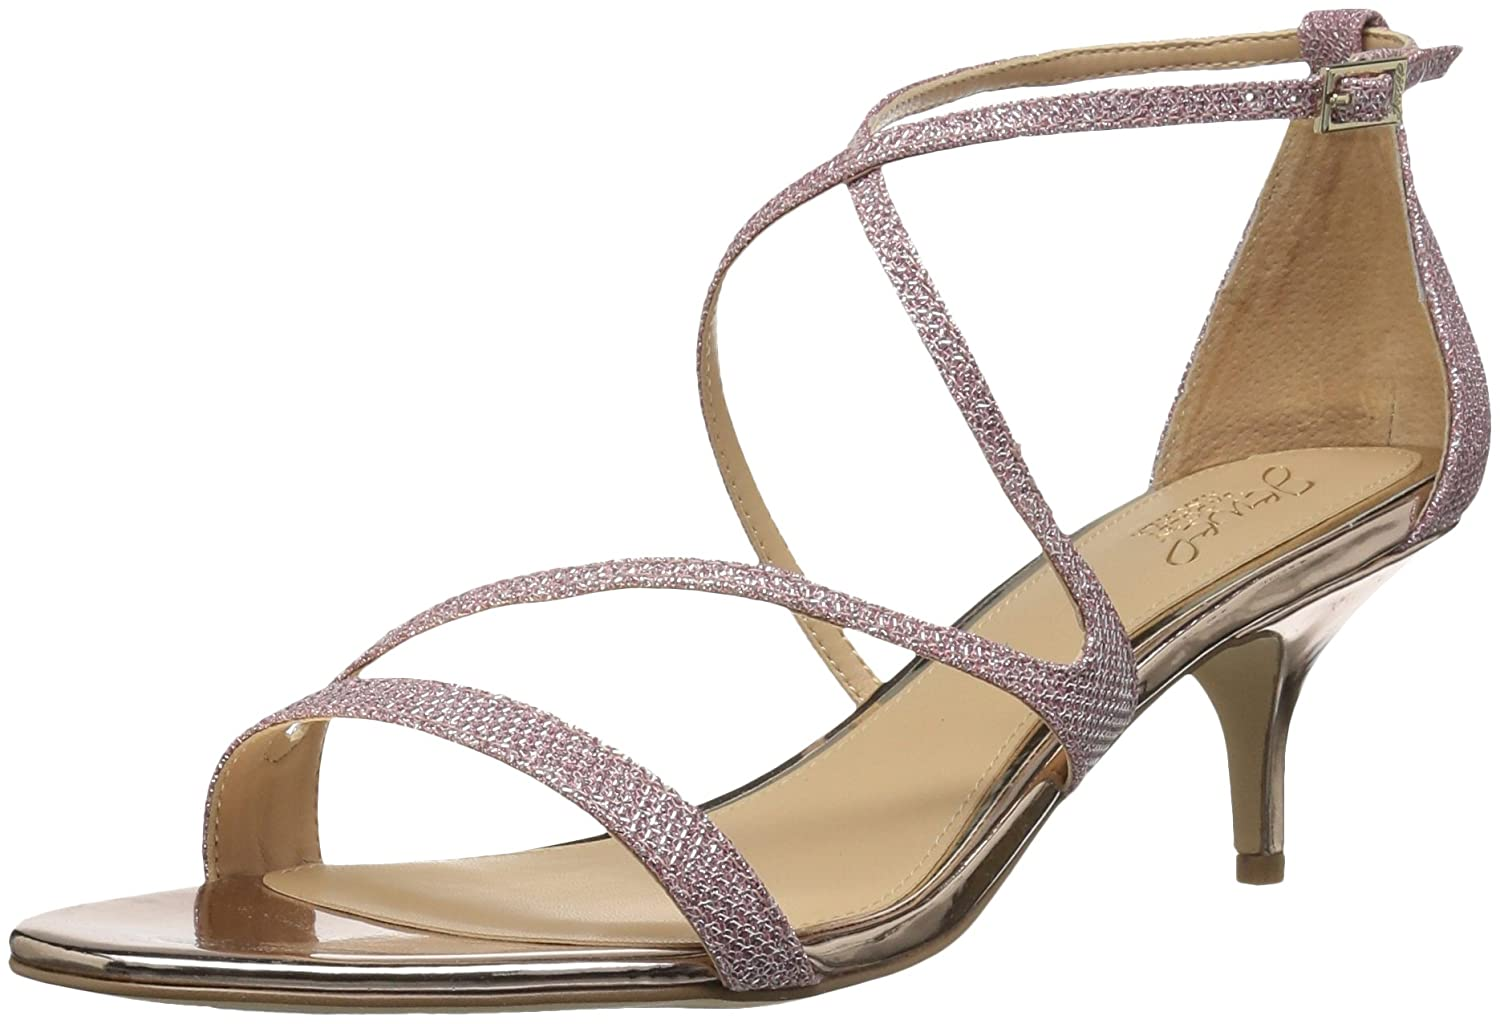 5331ab62f Amazon.com  Badgley Mischka Women s Gal Heeled Sandal  Shoes